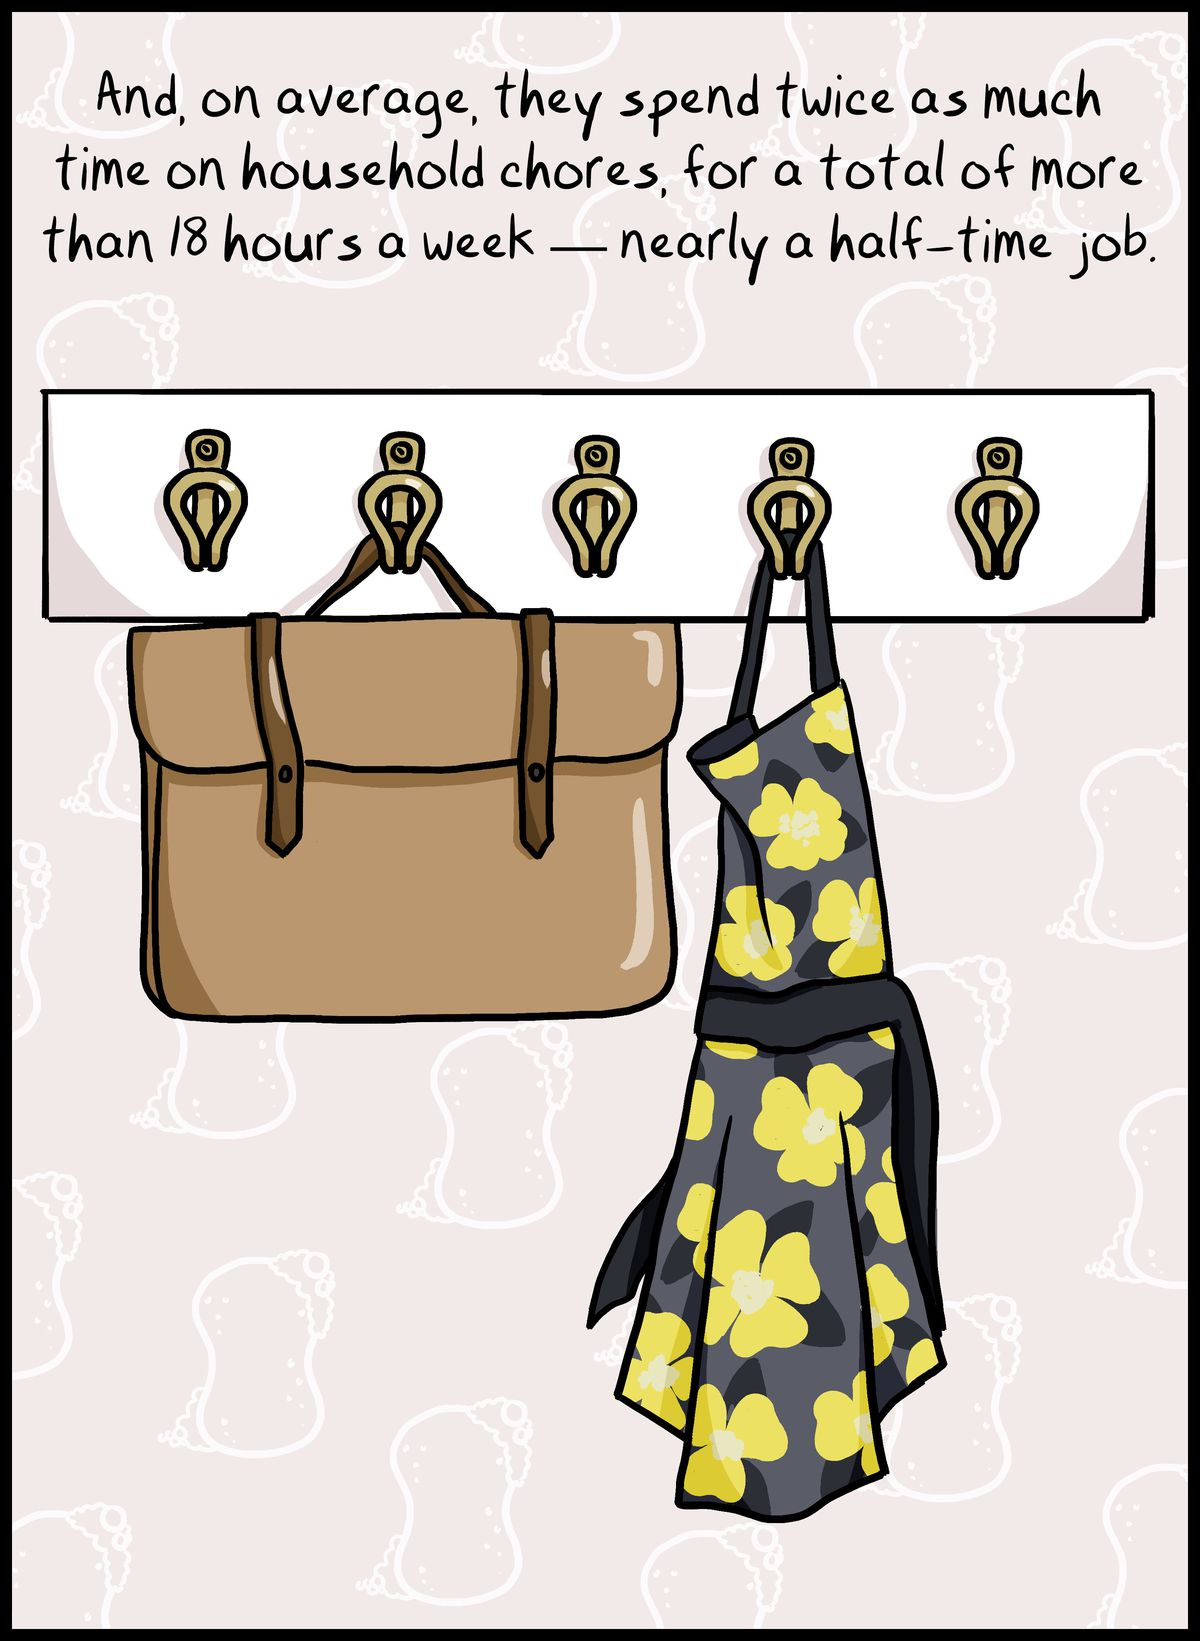 And, on average, they spend twice as much time on household chores, for a total of more than 18 hours a week — nearly a half-time job.